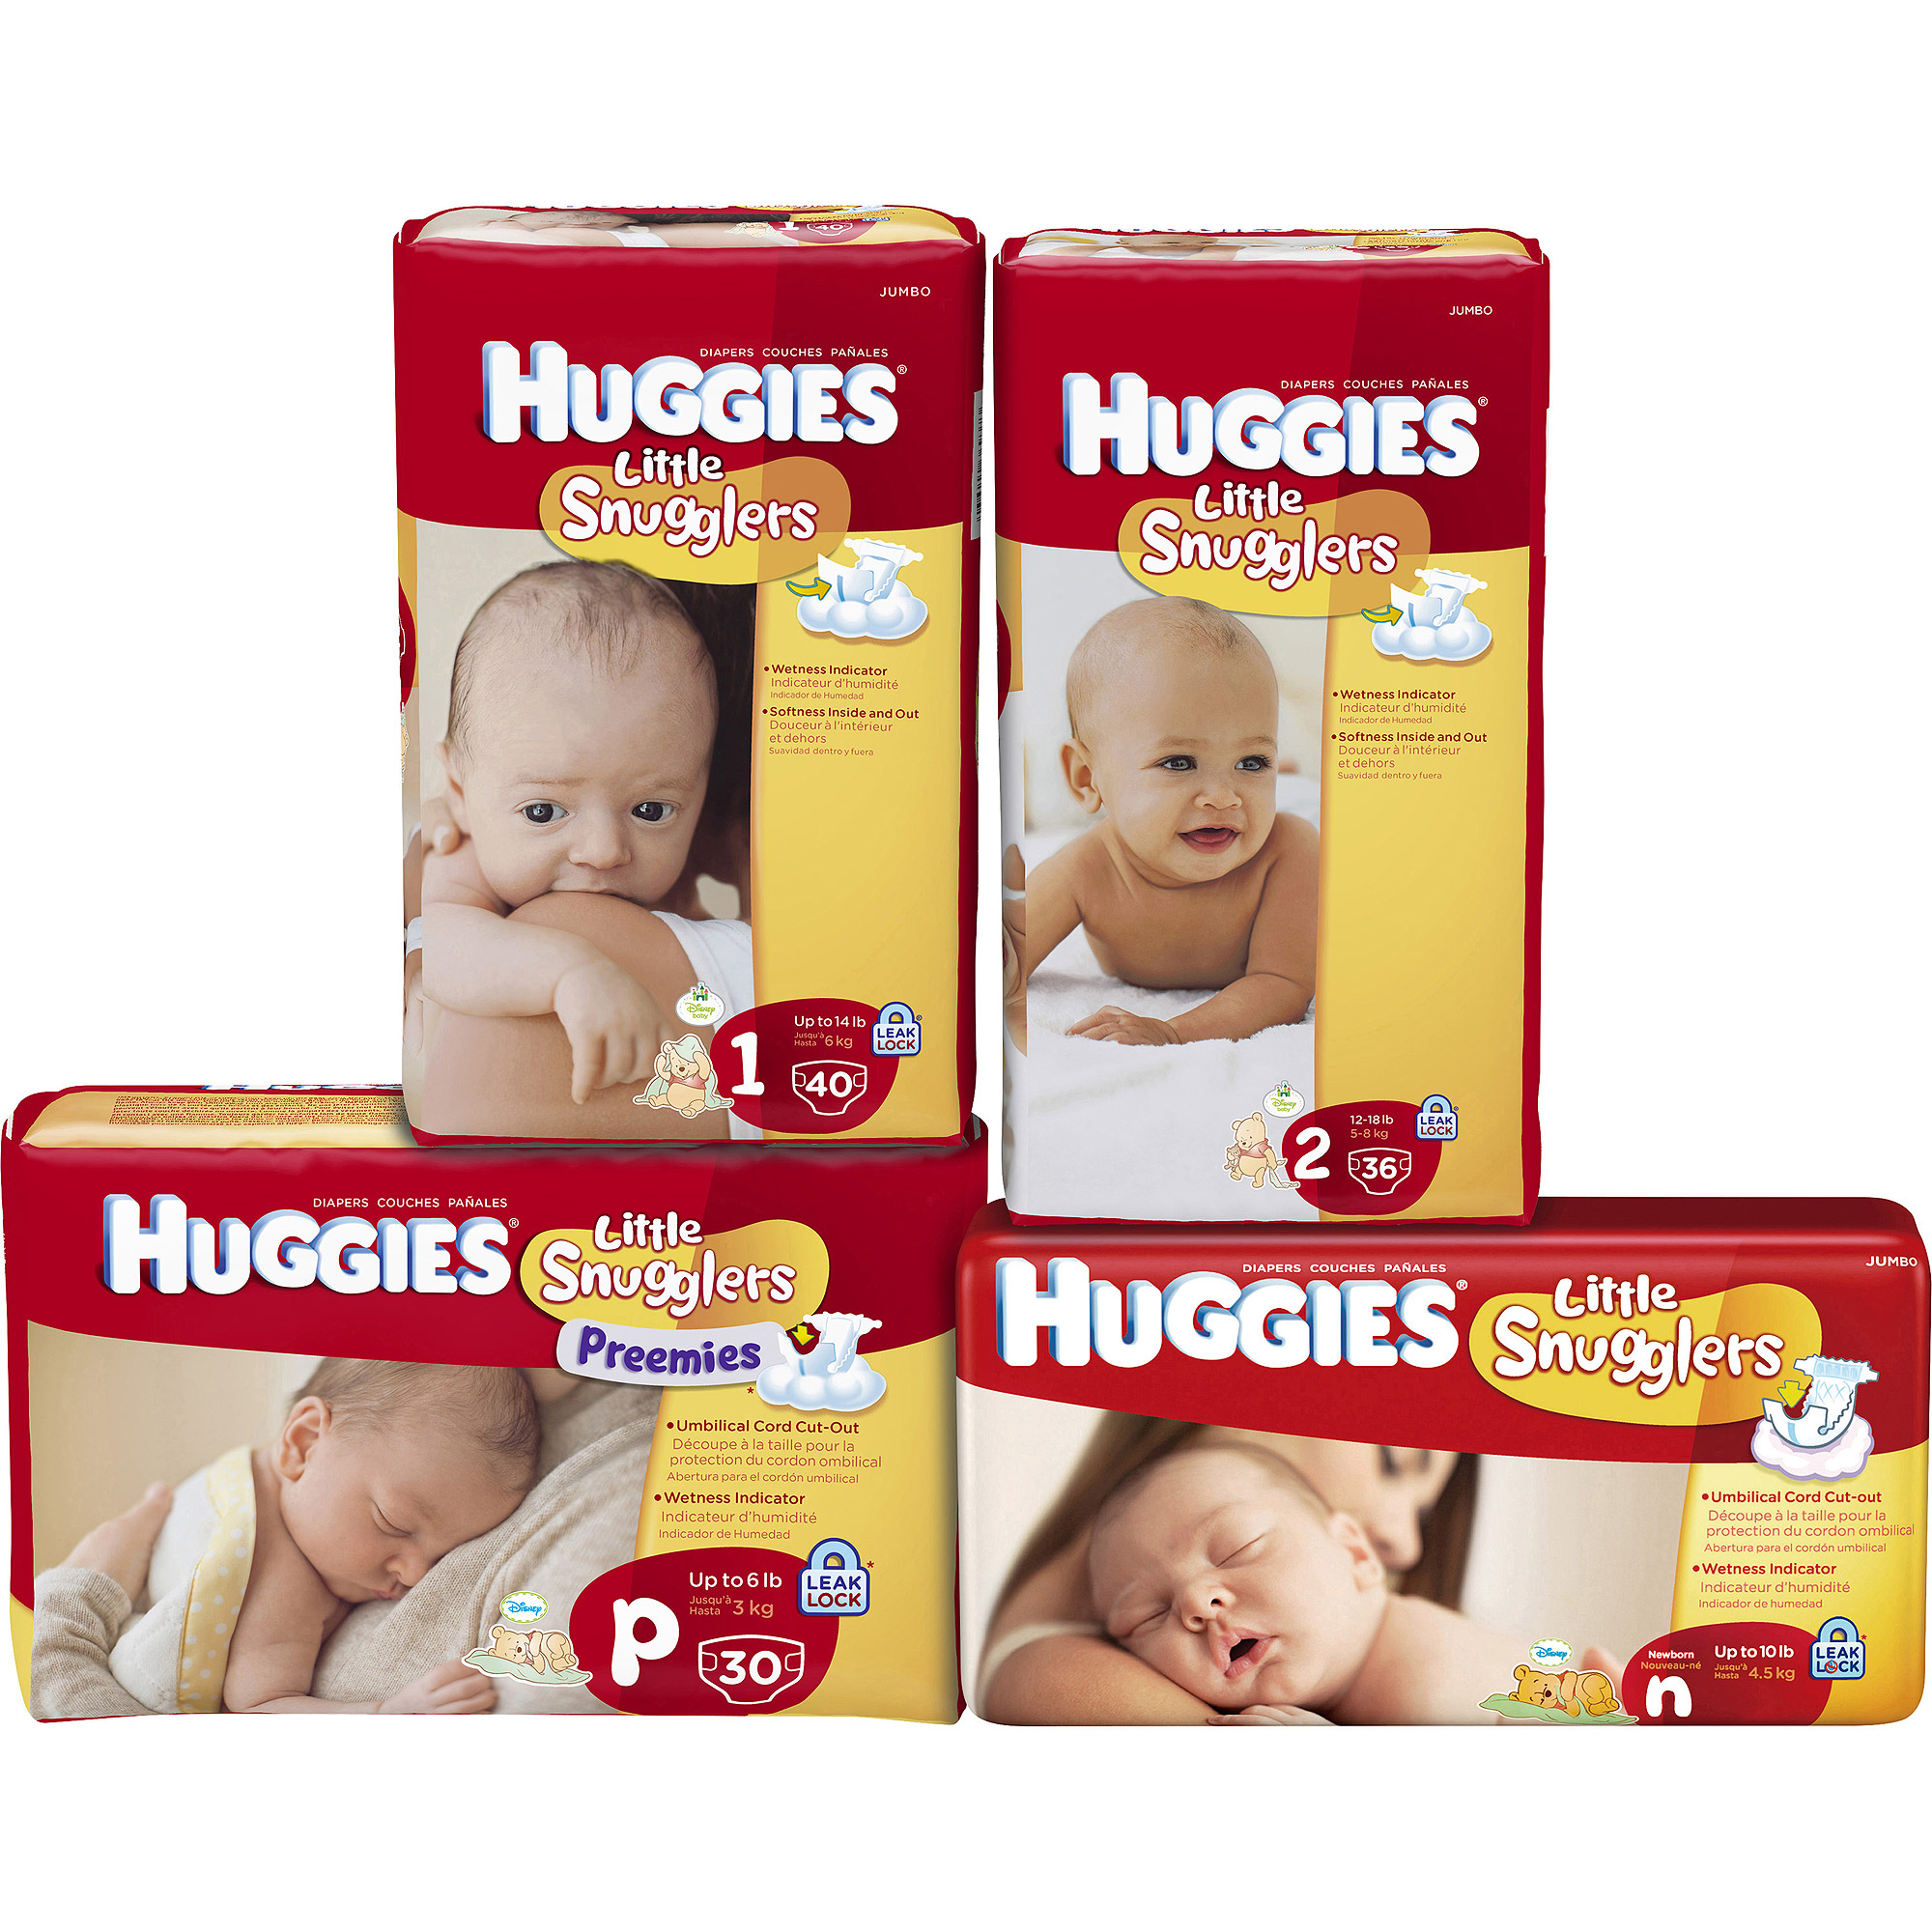 Huggies Little Snugglers Newborn Disney Diapers - 36 CT